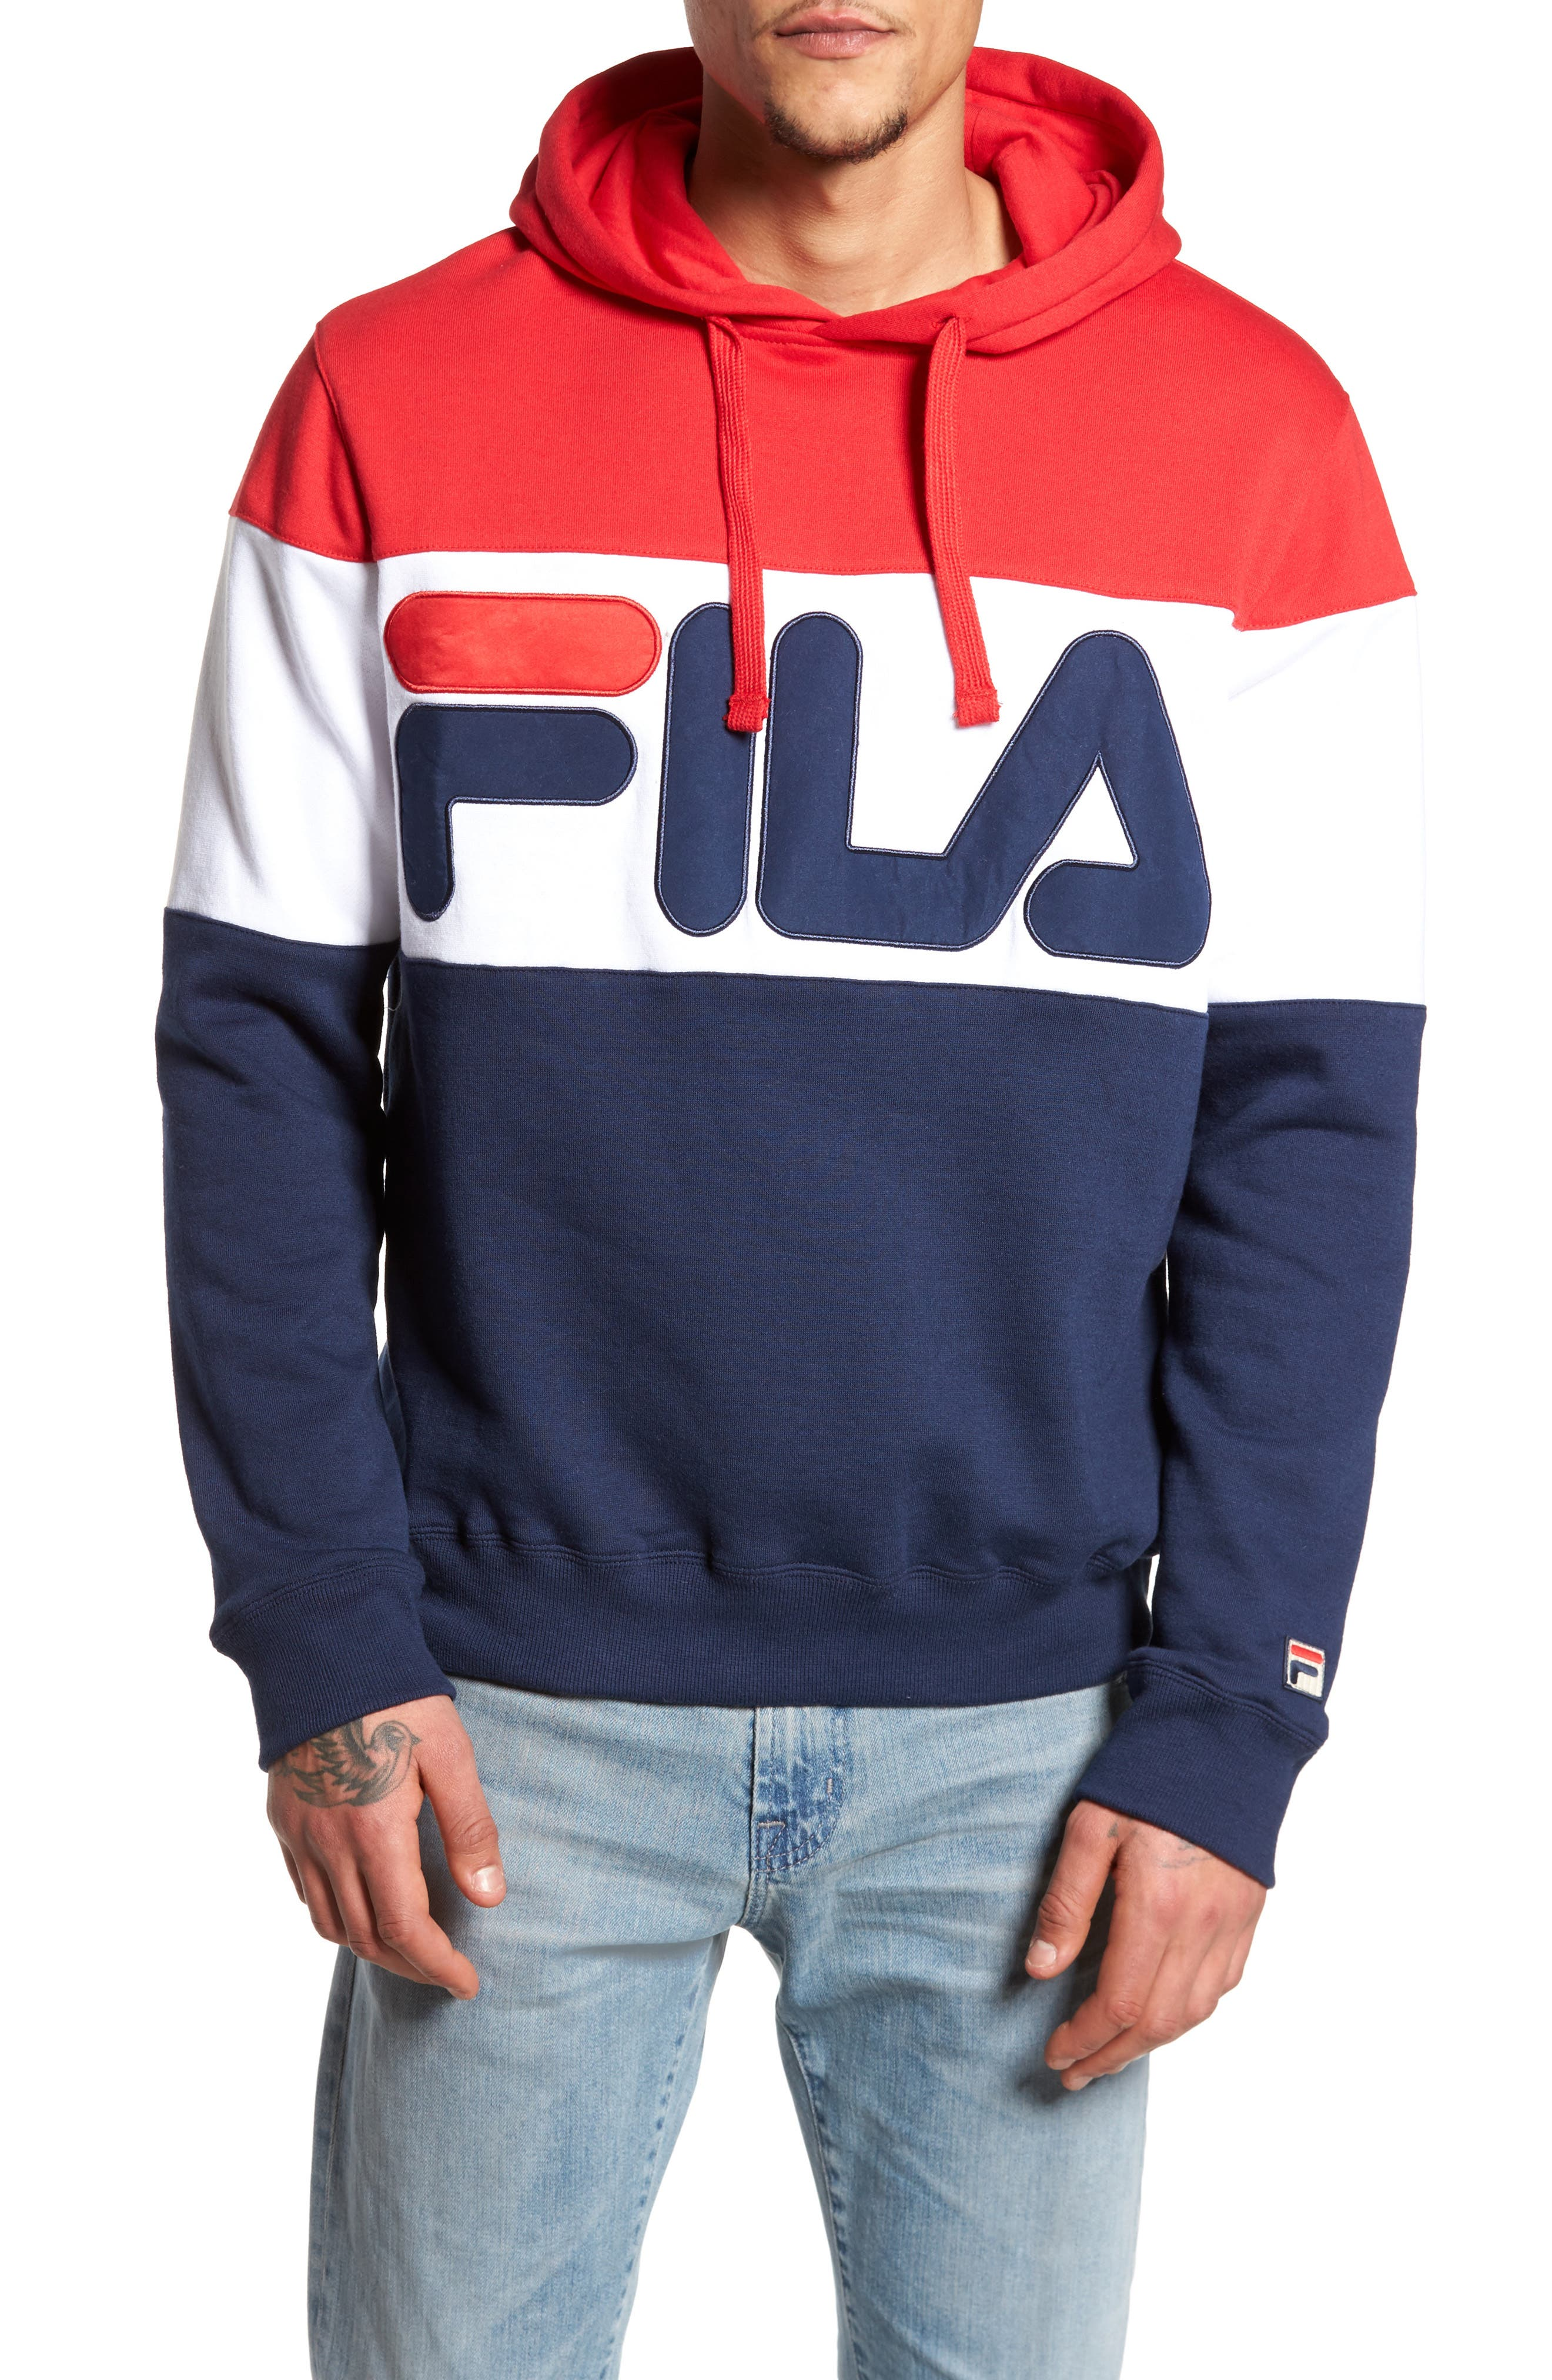 Trayton Hoodie,                         Main,                         color, Chinese Red/ White/ Navy